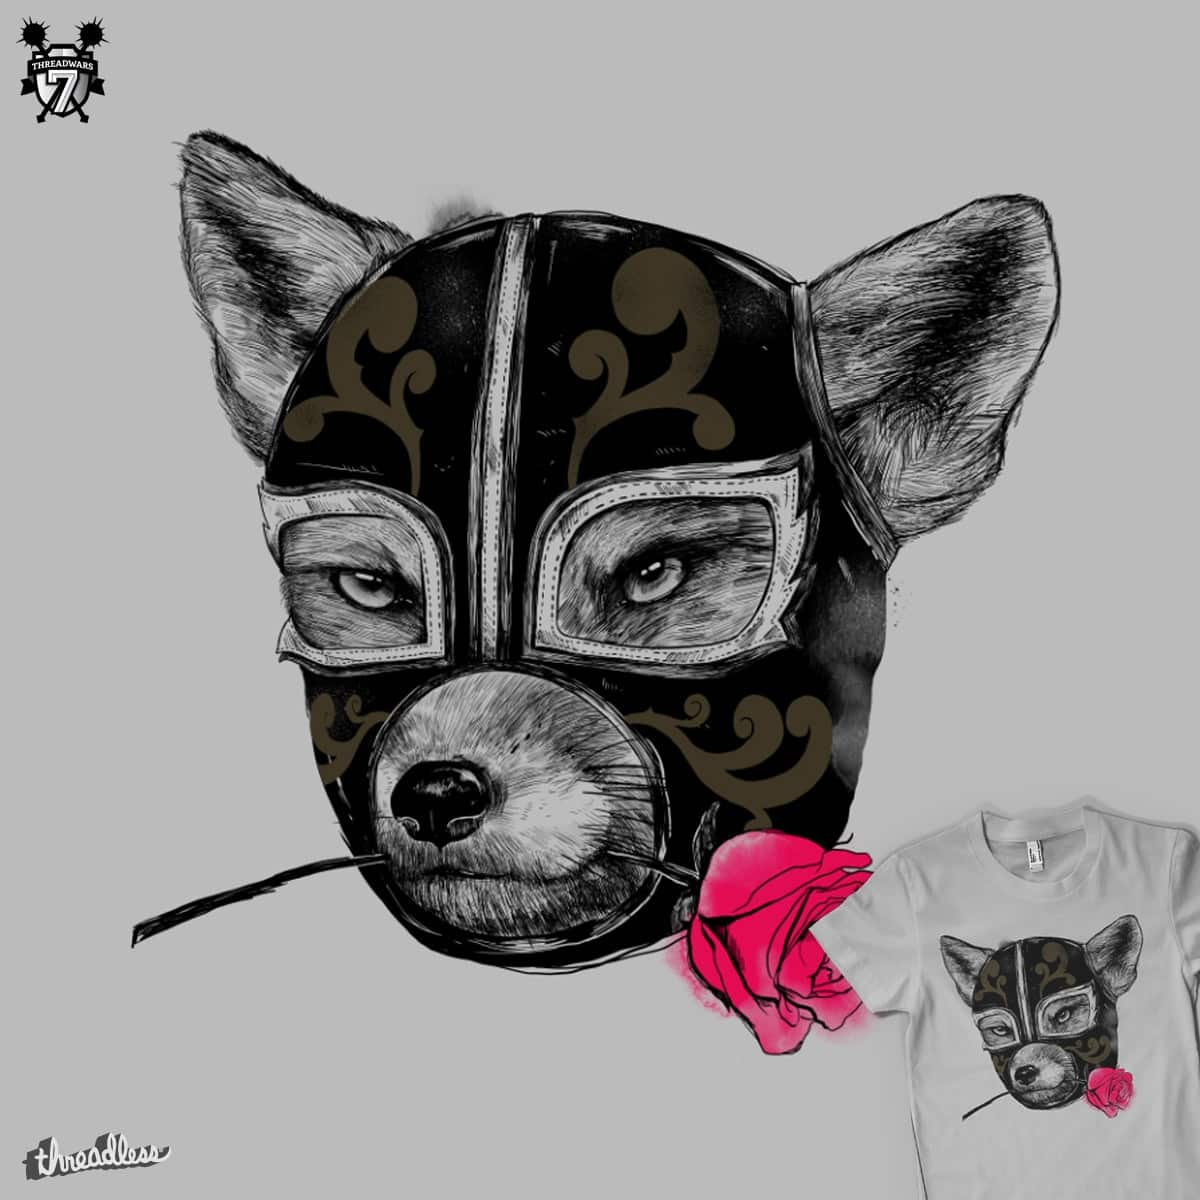 The Mask of El Zorro Luchador by MadKobra on Threadless